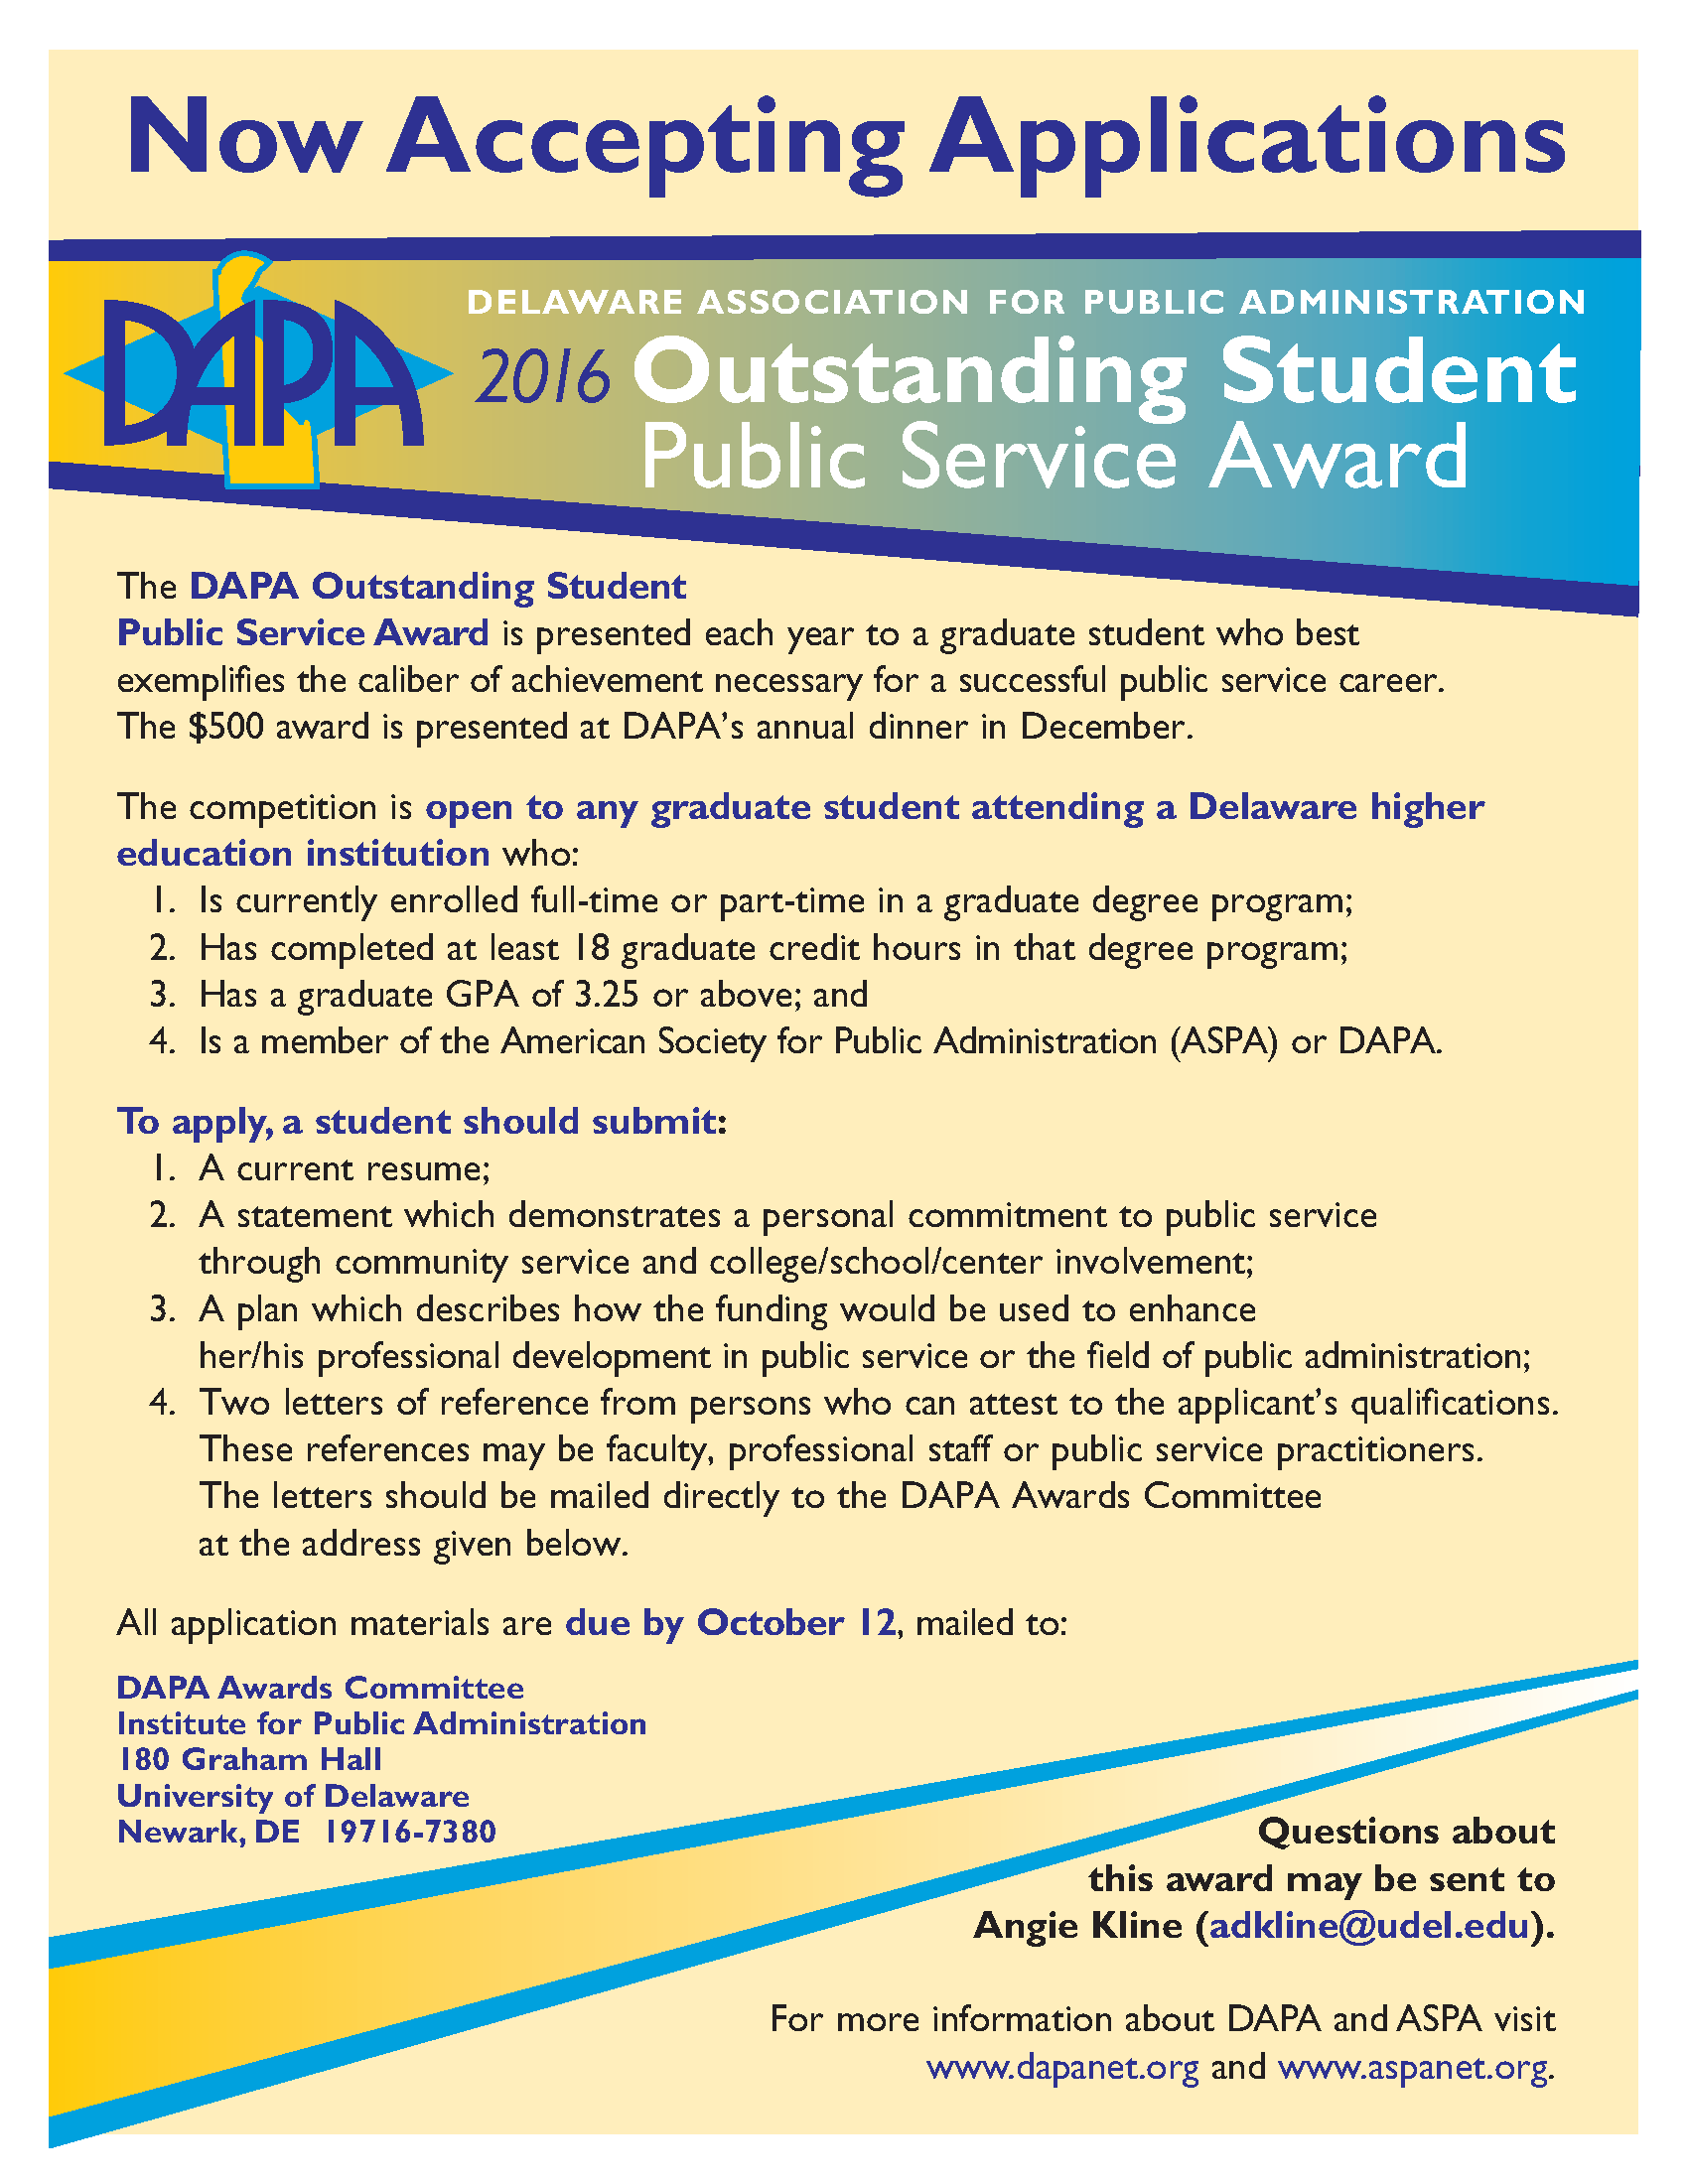 Additional information about the student public service award